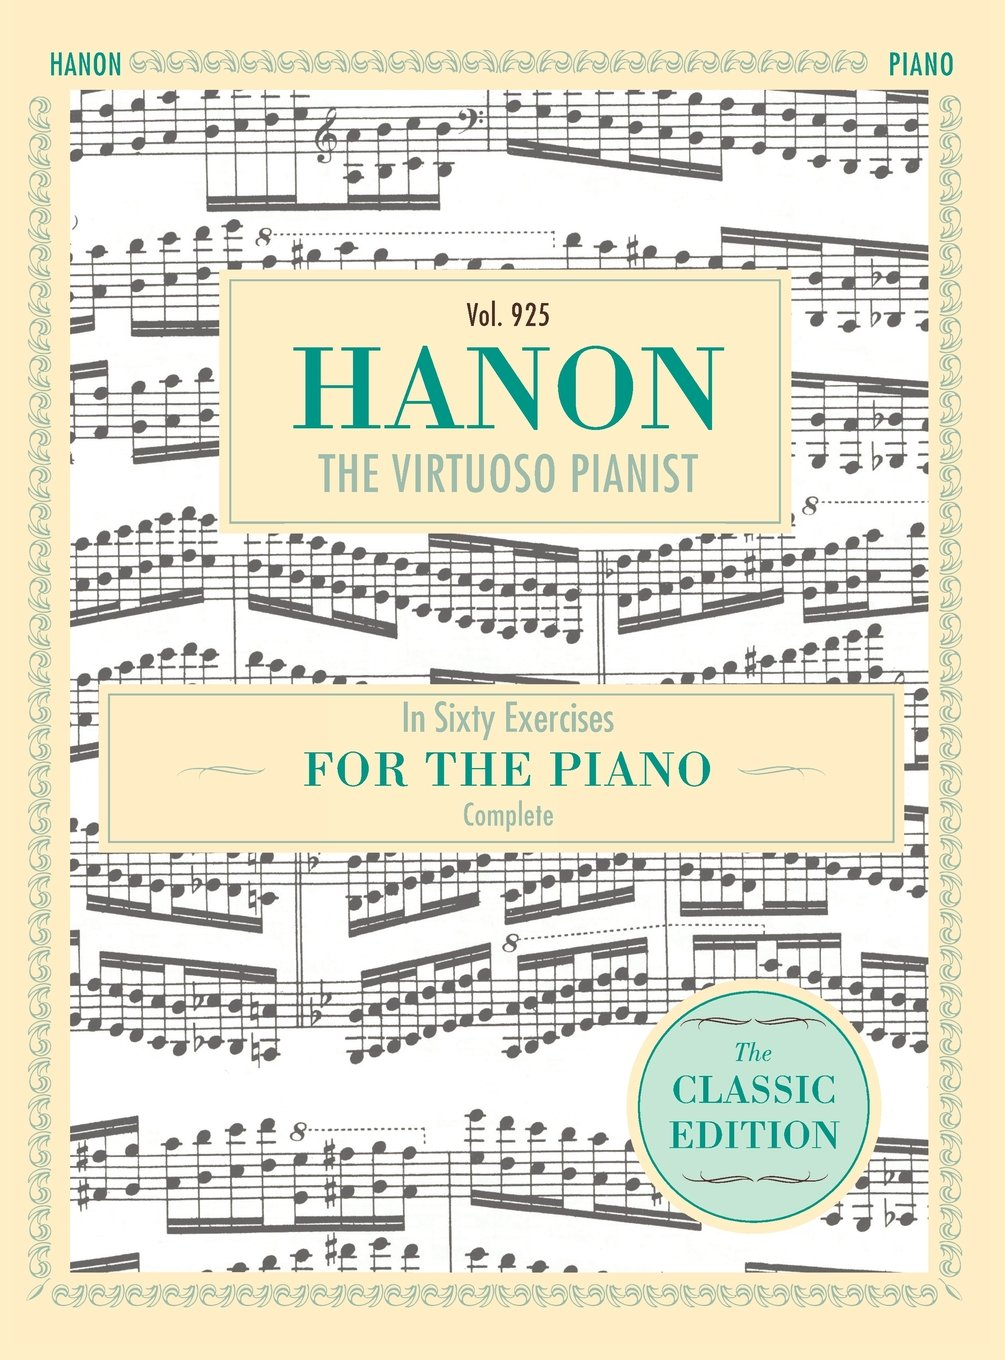 Hanon: The Virtuoso Pianist in Sixty Exercises, Complete (Schirmer's Library of Musical Classics, Vol. 925) pdf epub